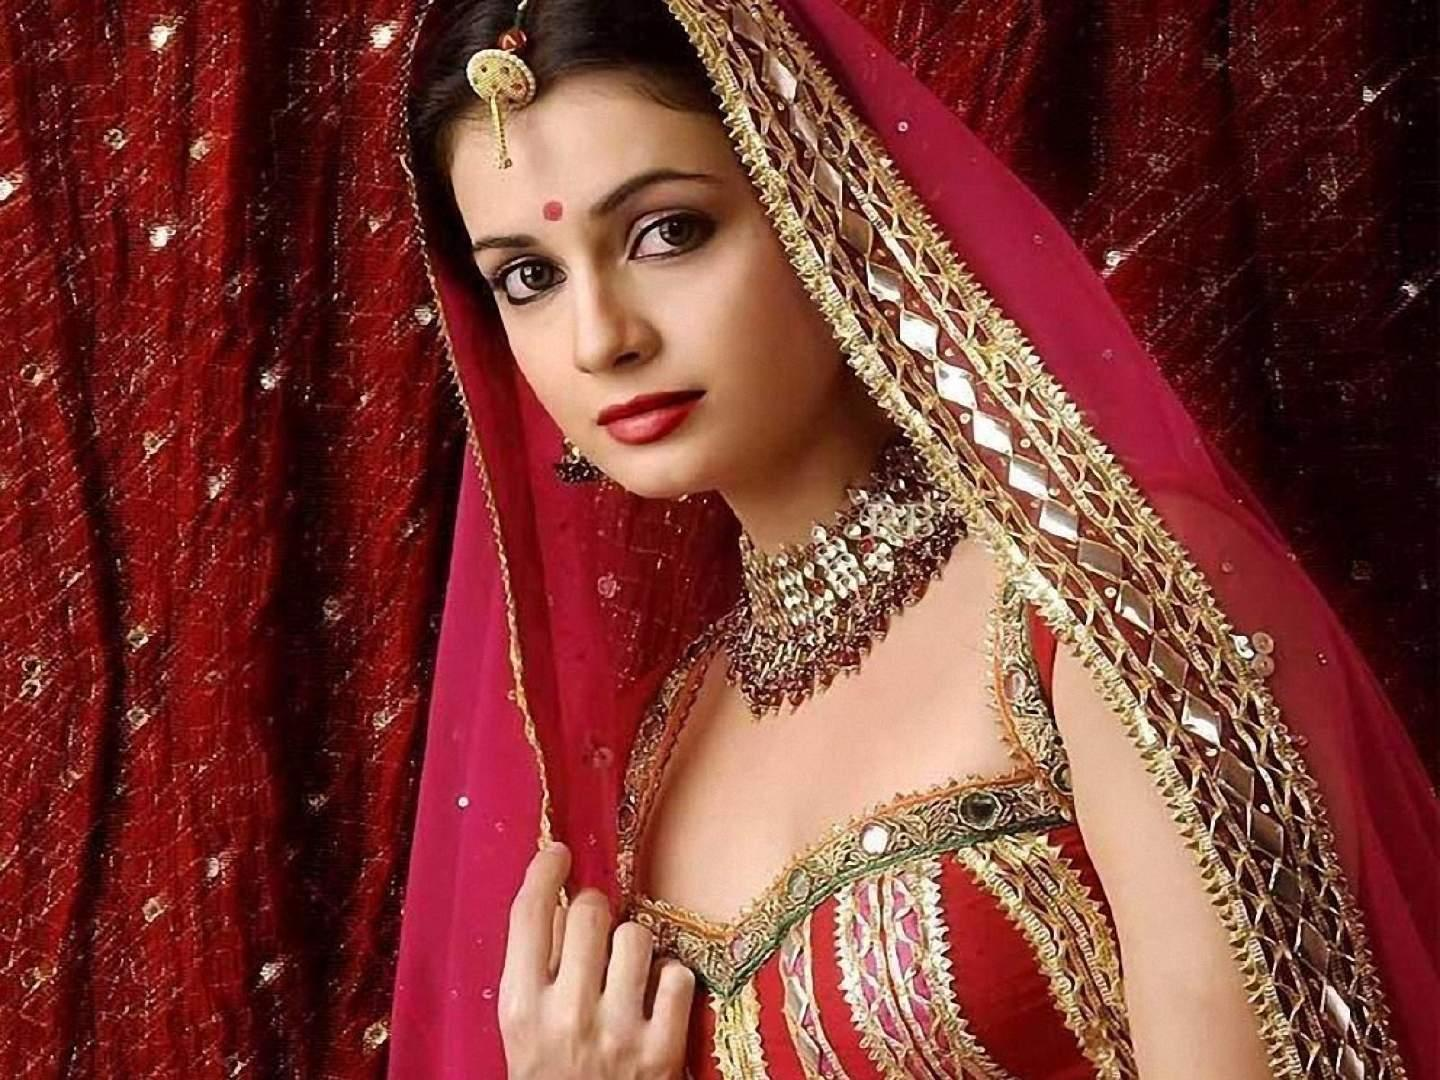 Wallpaper Diya Mirza Hindu look wallpaper free wallpaper in free desktop backgrounds category: Woman-celebrity-backgrounds.